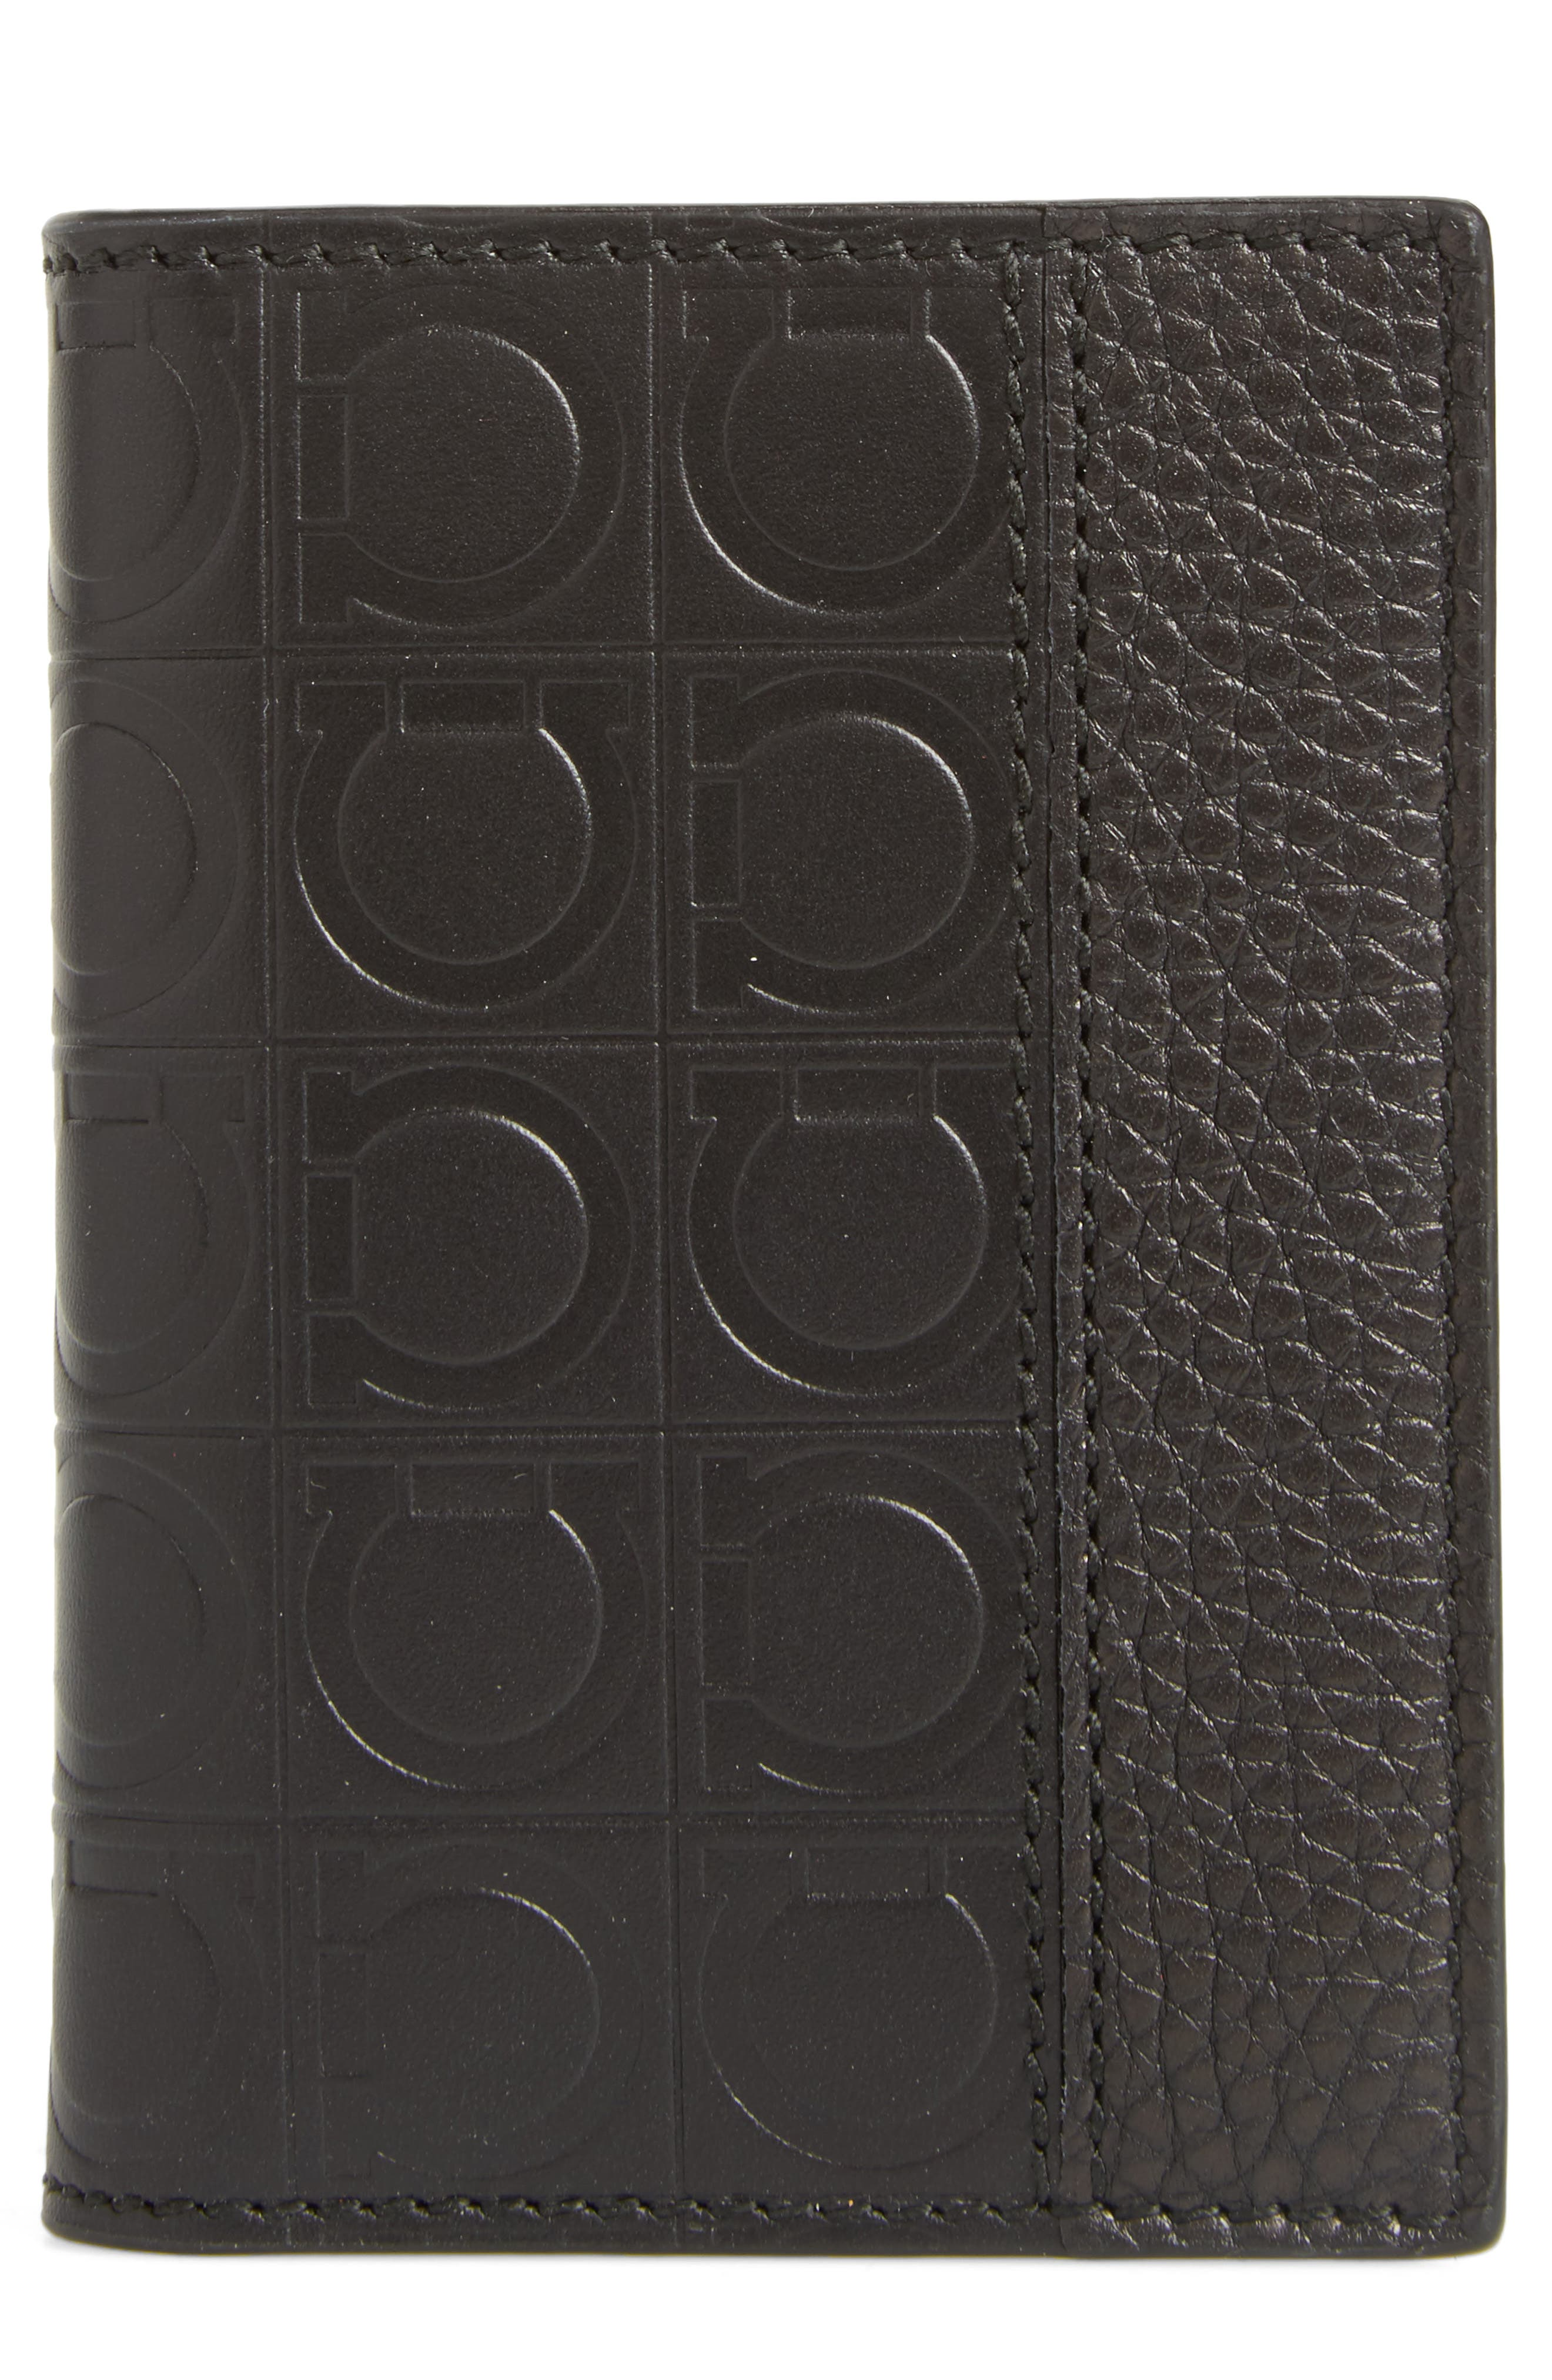 Firenze Leather Folding Card Case,                             Main thumbnail 1, color,                             Black